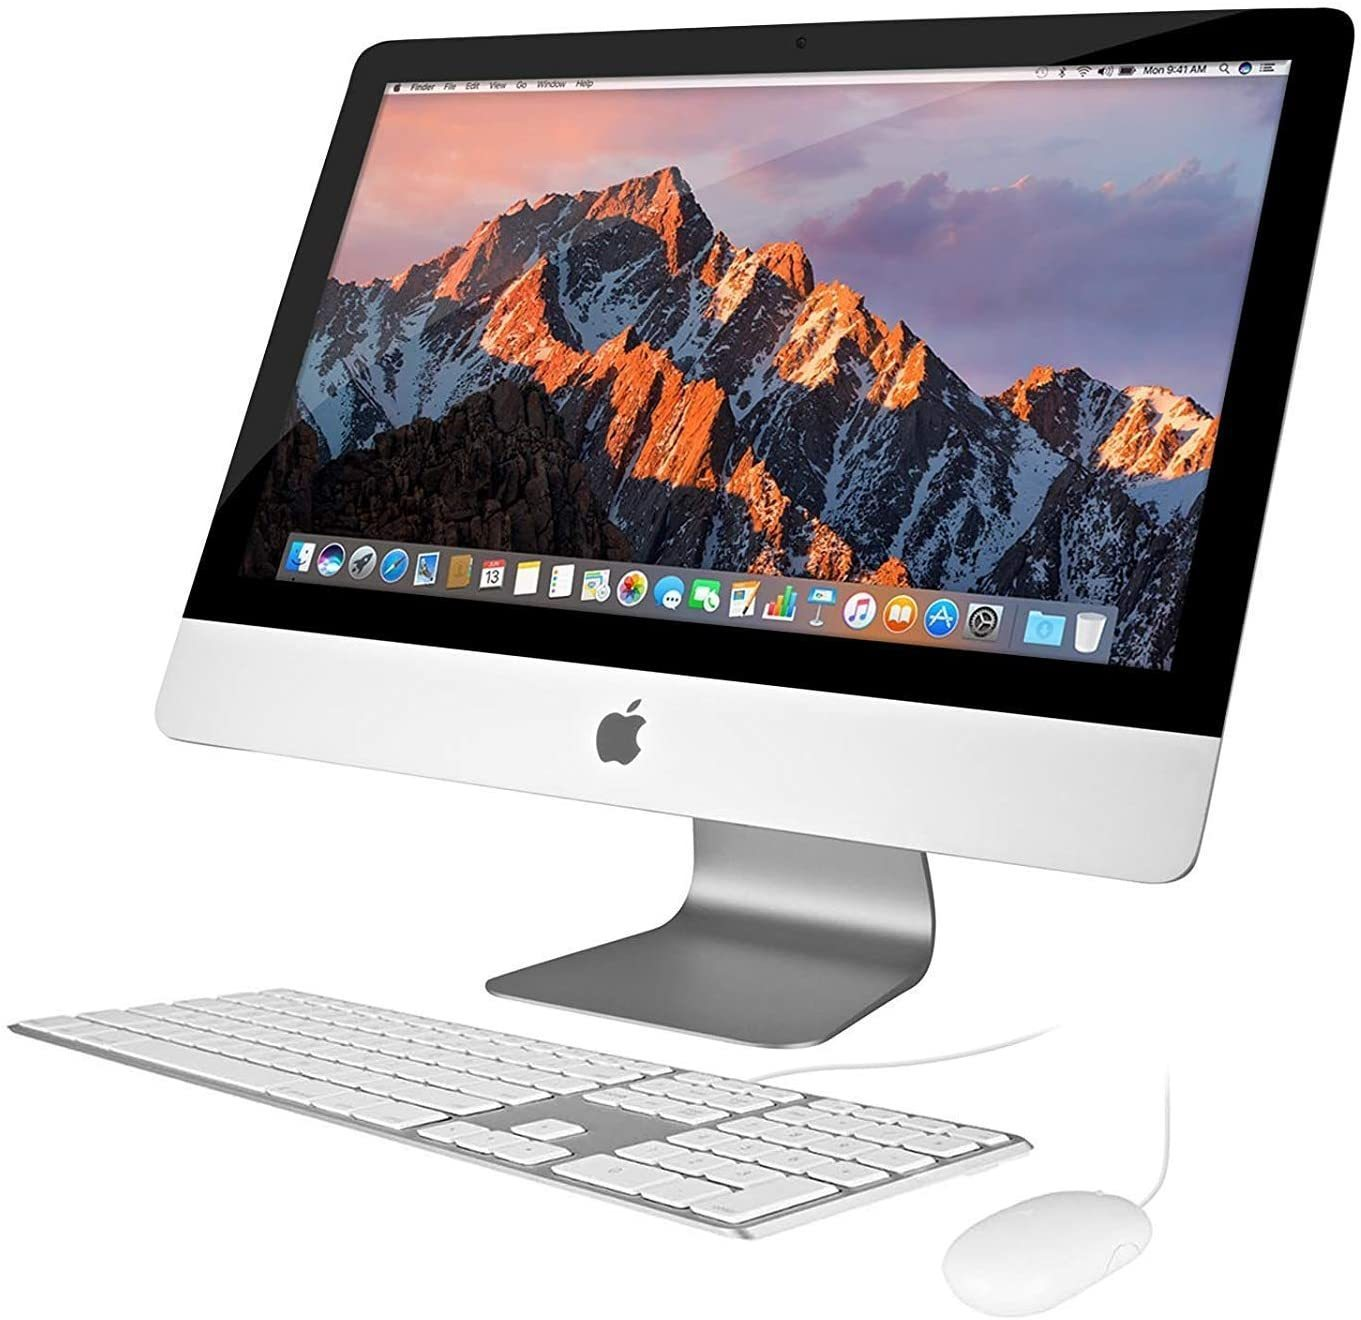 "B Grade - Apple iMac A1418 Ex Lease All-in-One Desktop i5-5250U Turbo-Boost 2.7GHz 8GB RAM 1TB HDD HD GRAPHICS 6000 21.5"" Full HD 1080P WEBCAM MAC OS CATALINA (Medium Damage Casing)"